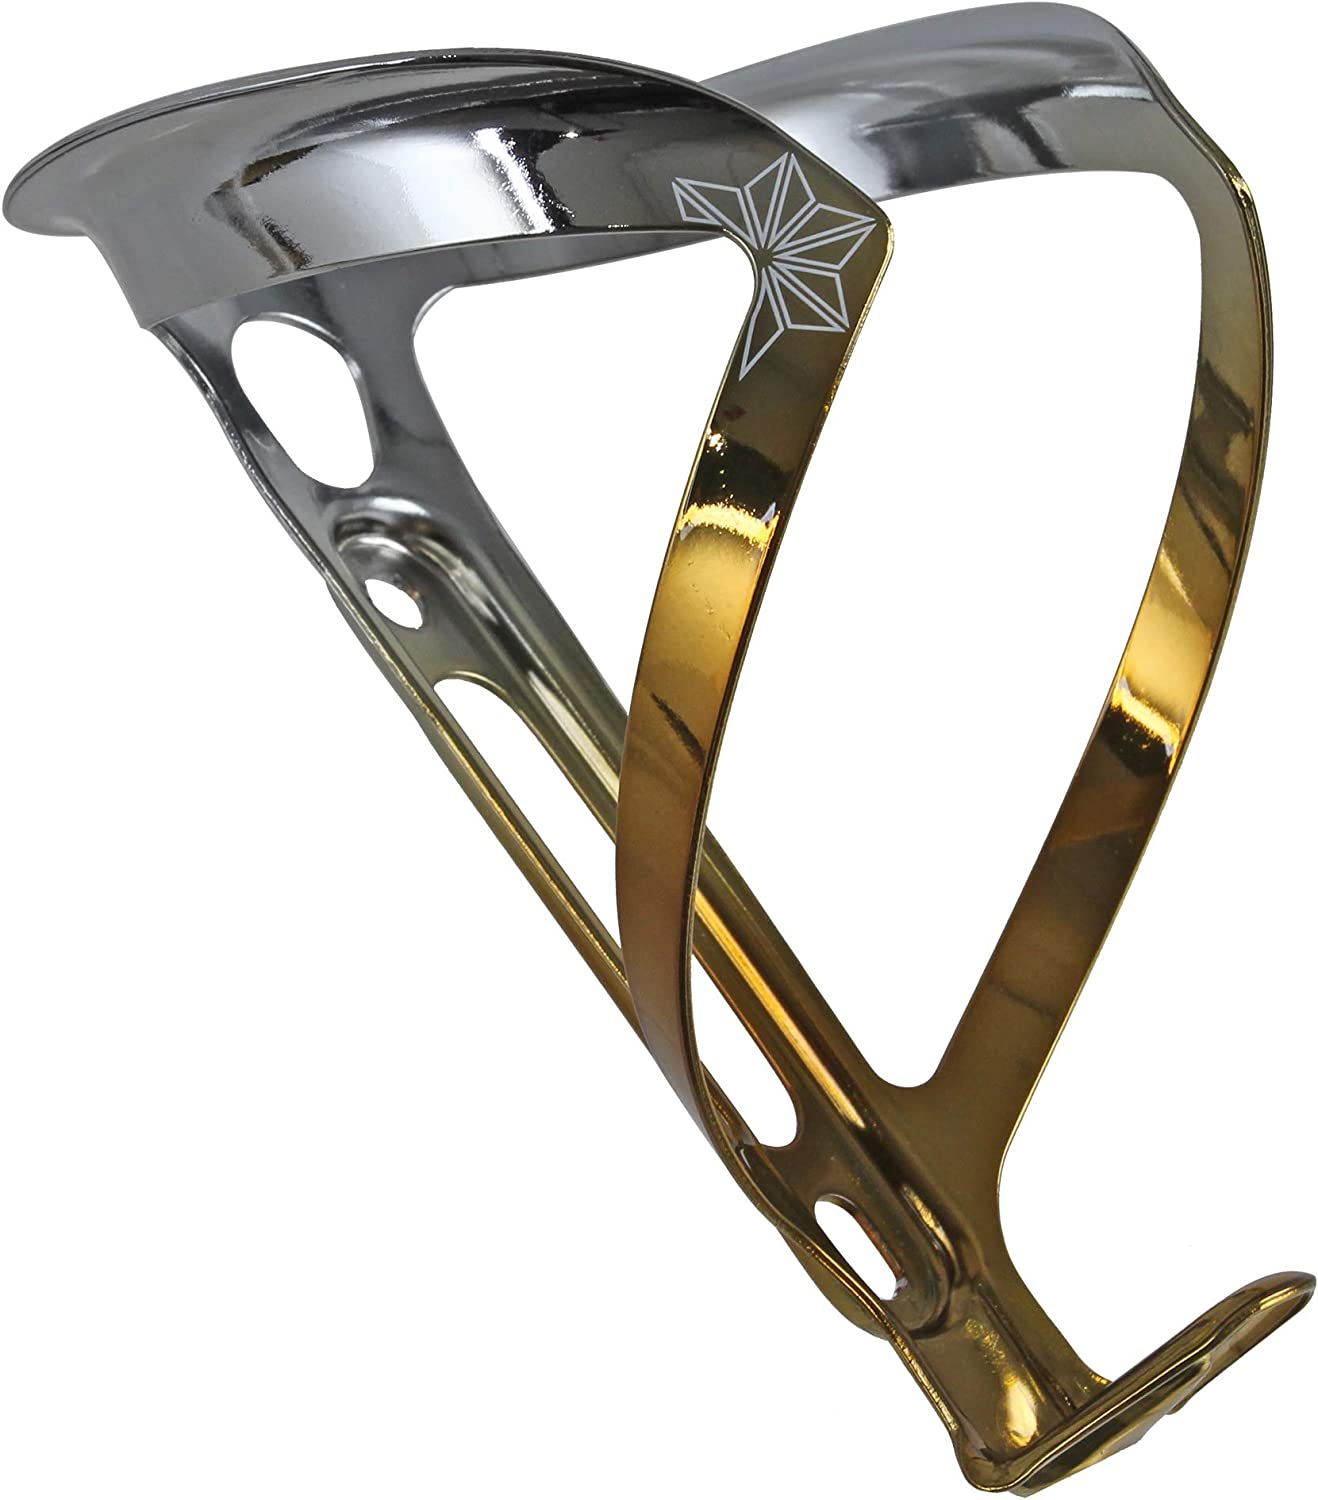 Supacaz Cycling Gold Ano Fly Water Bottle Cage 18g